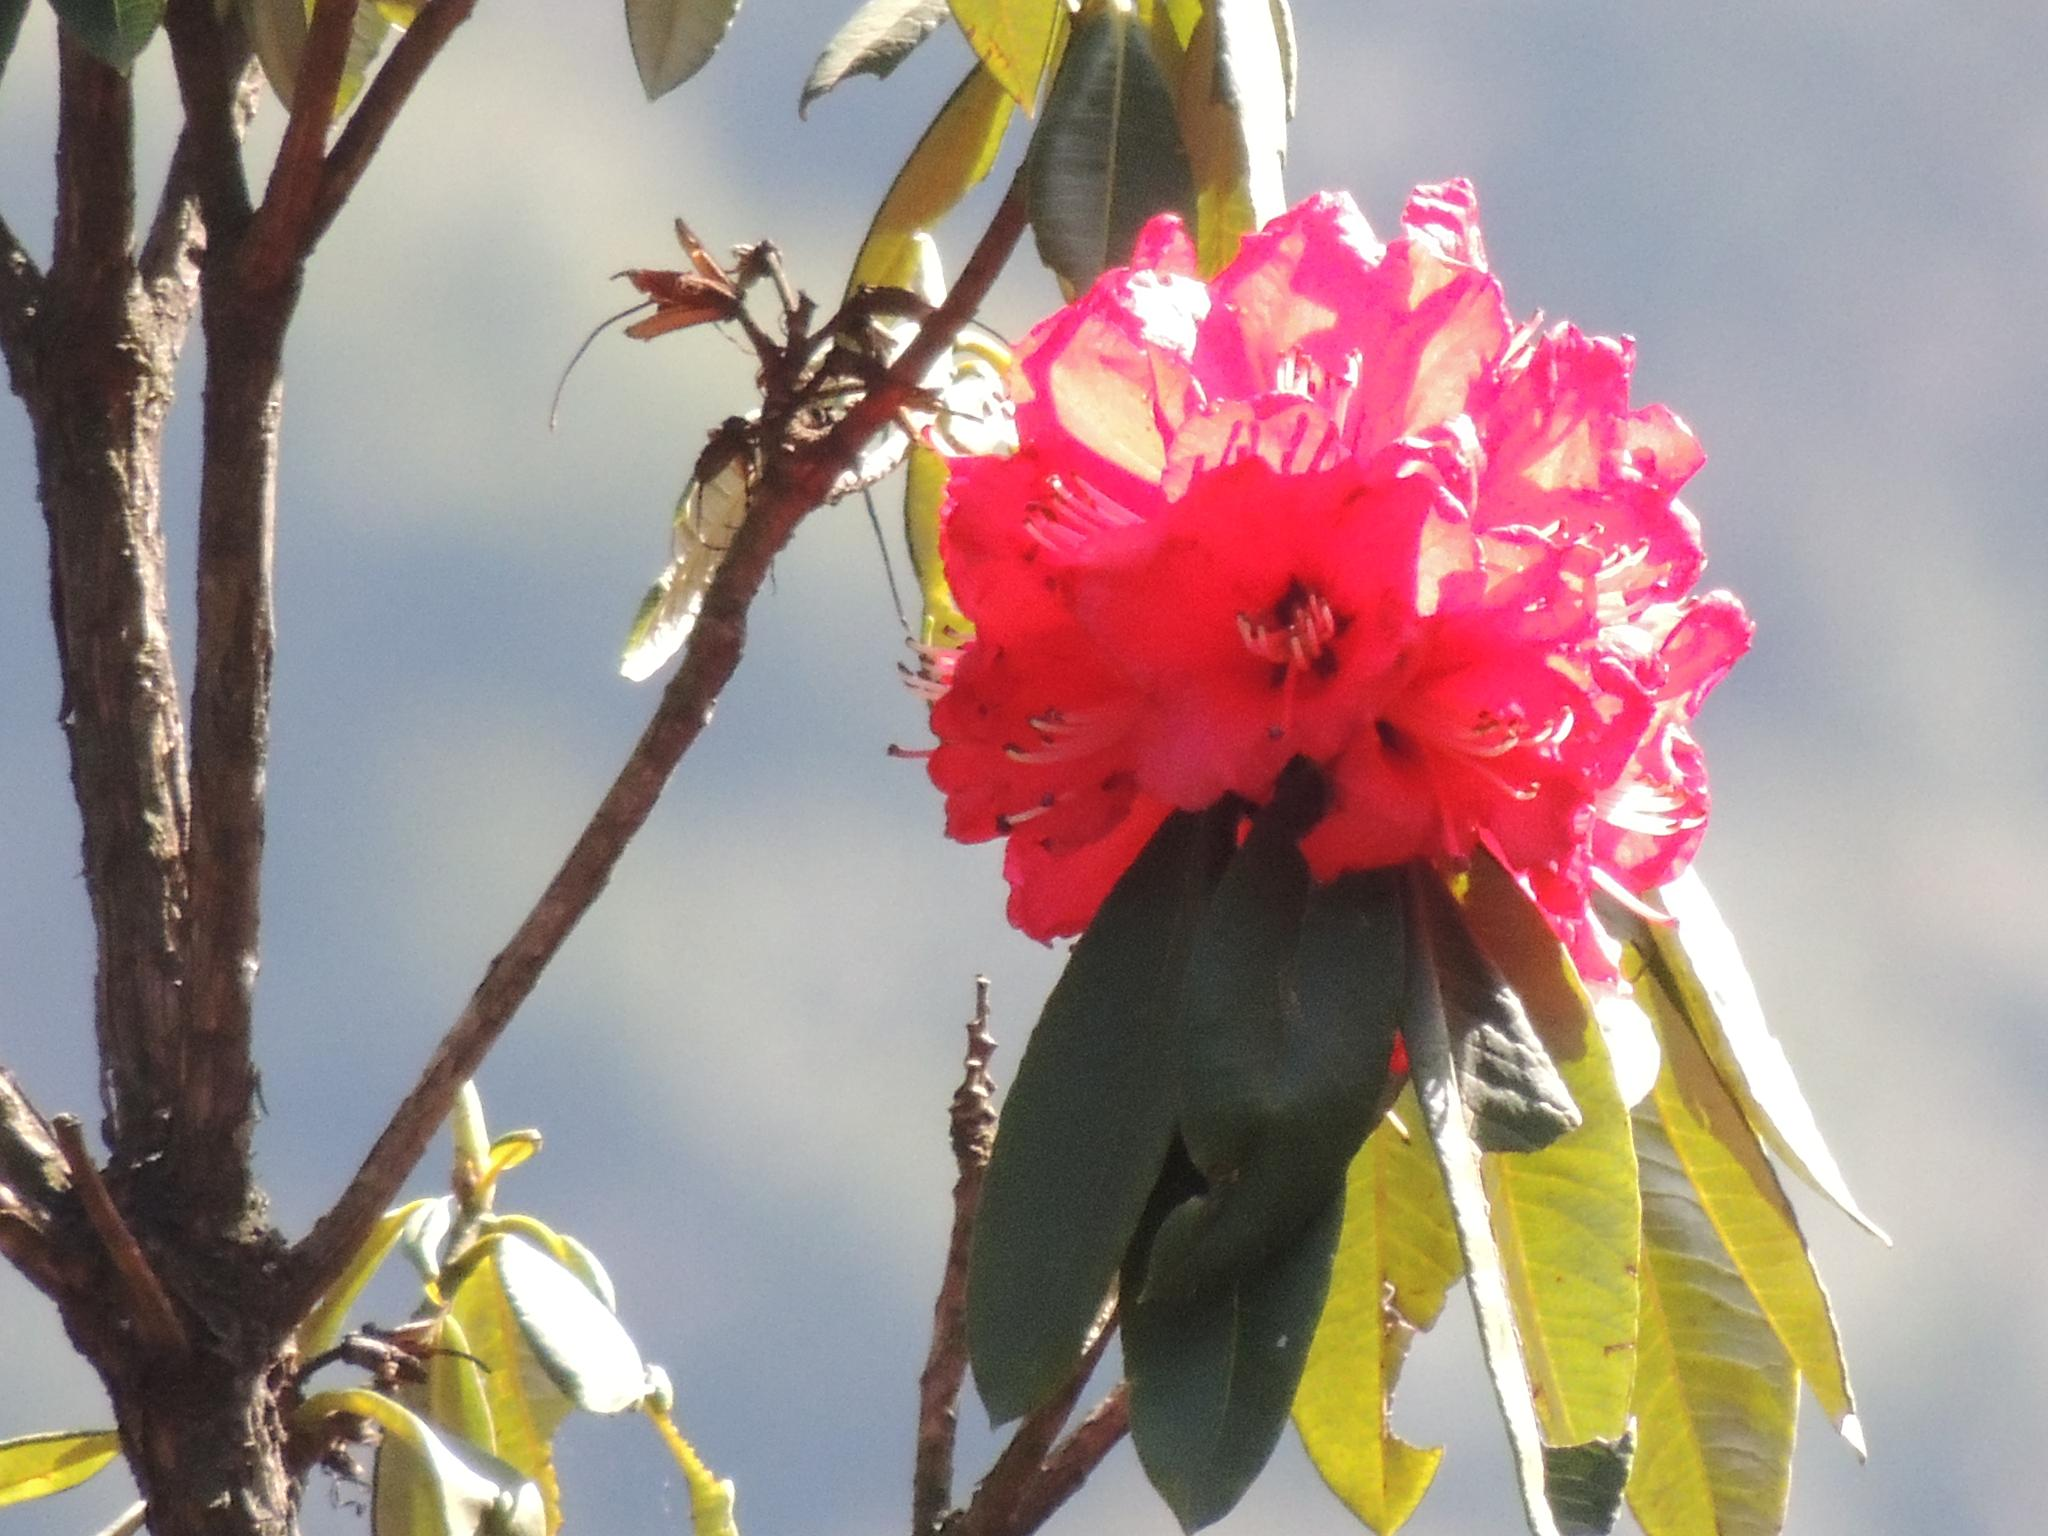 Rhododendron by Sujan Shrestha